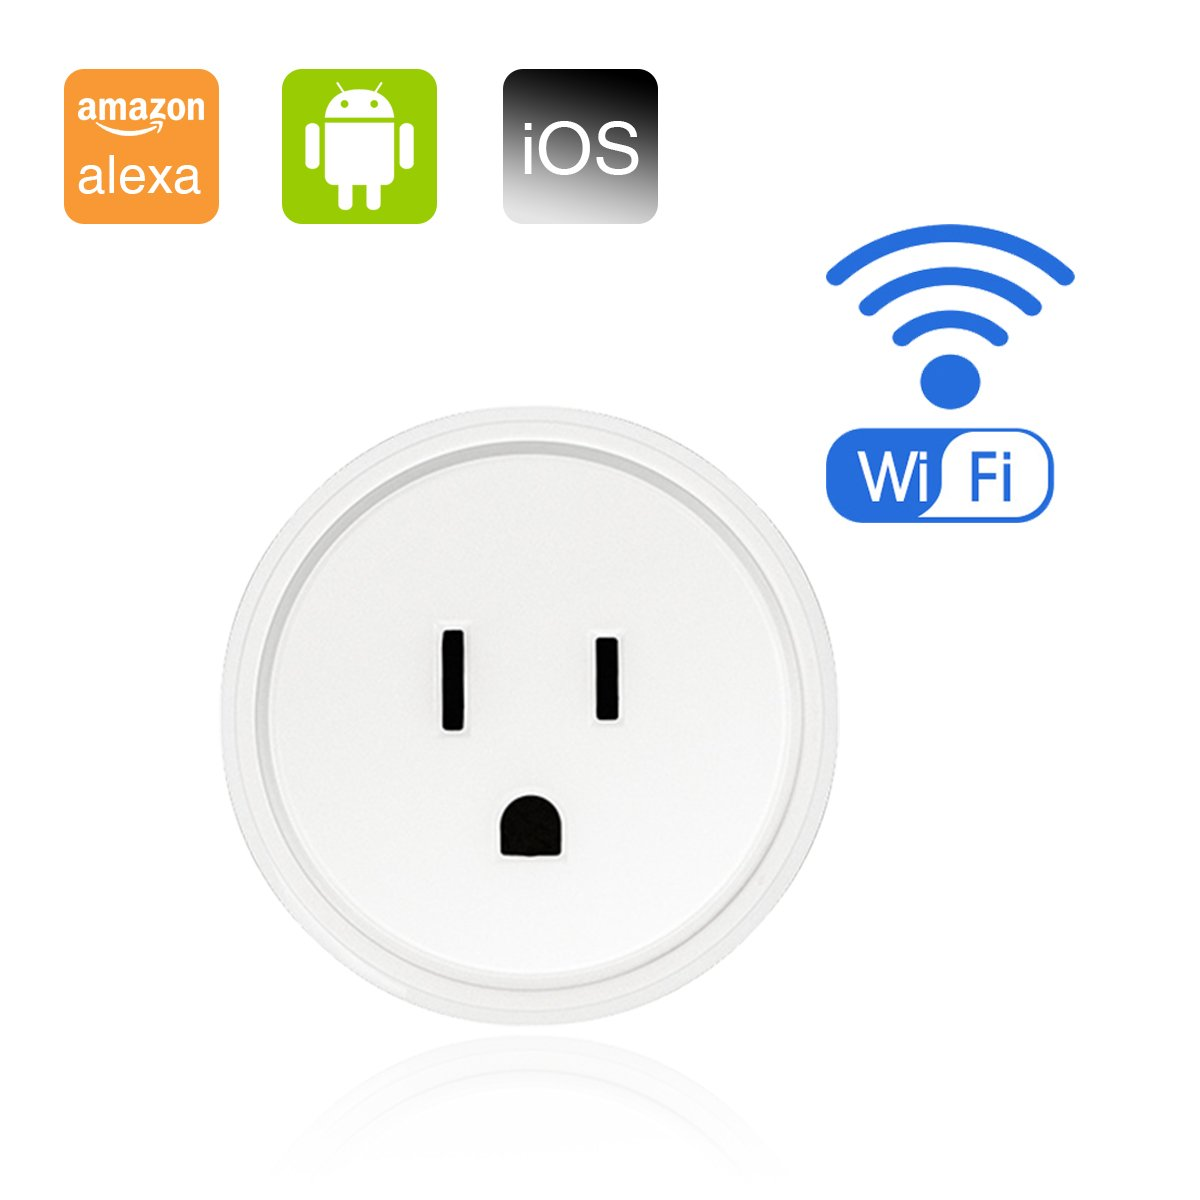 Mini Smart Plug Wireless Socket Wifi Outlet Timer Compatible with Alexa Google Home, Voice Remote Control Your Home Devices Anywhere, No Hub Required - 1 Pack